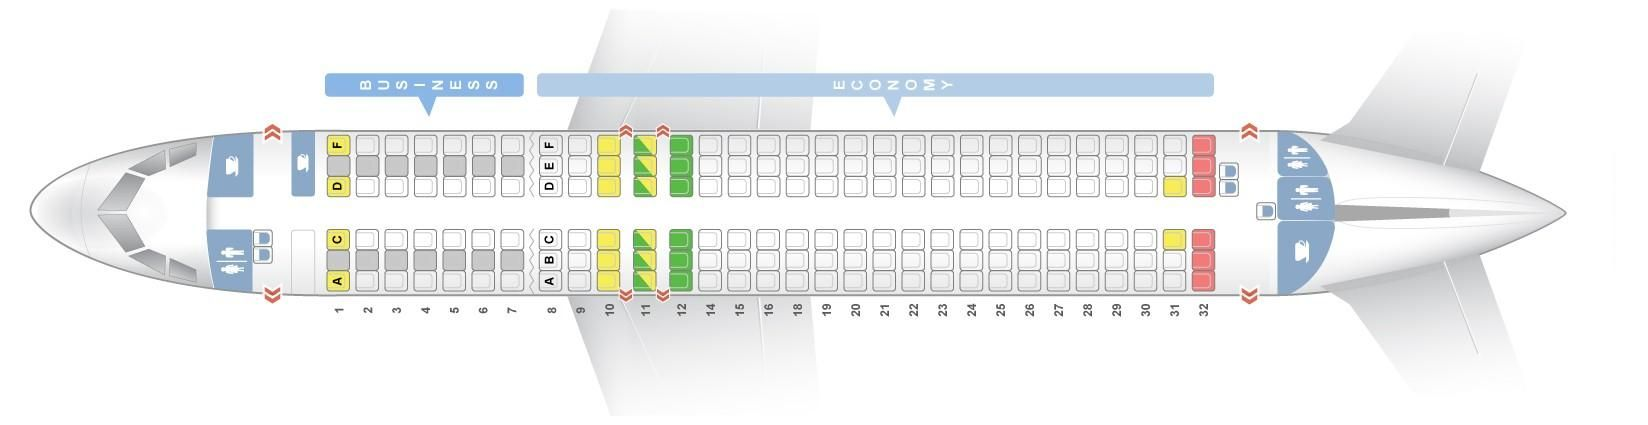 Seat Map And Seating Chart Airbus A320neo Lufthansa Airbus Fleet Vueling Airlines